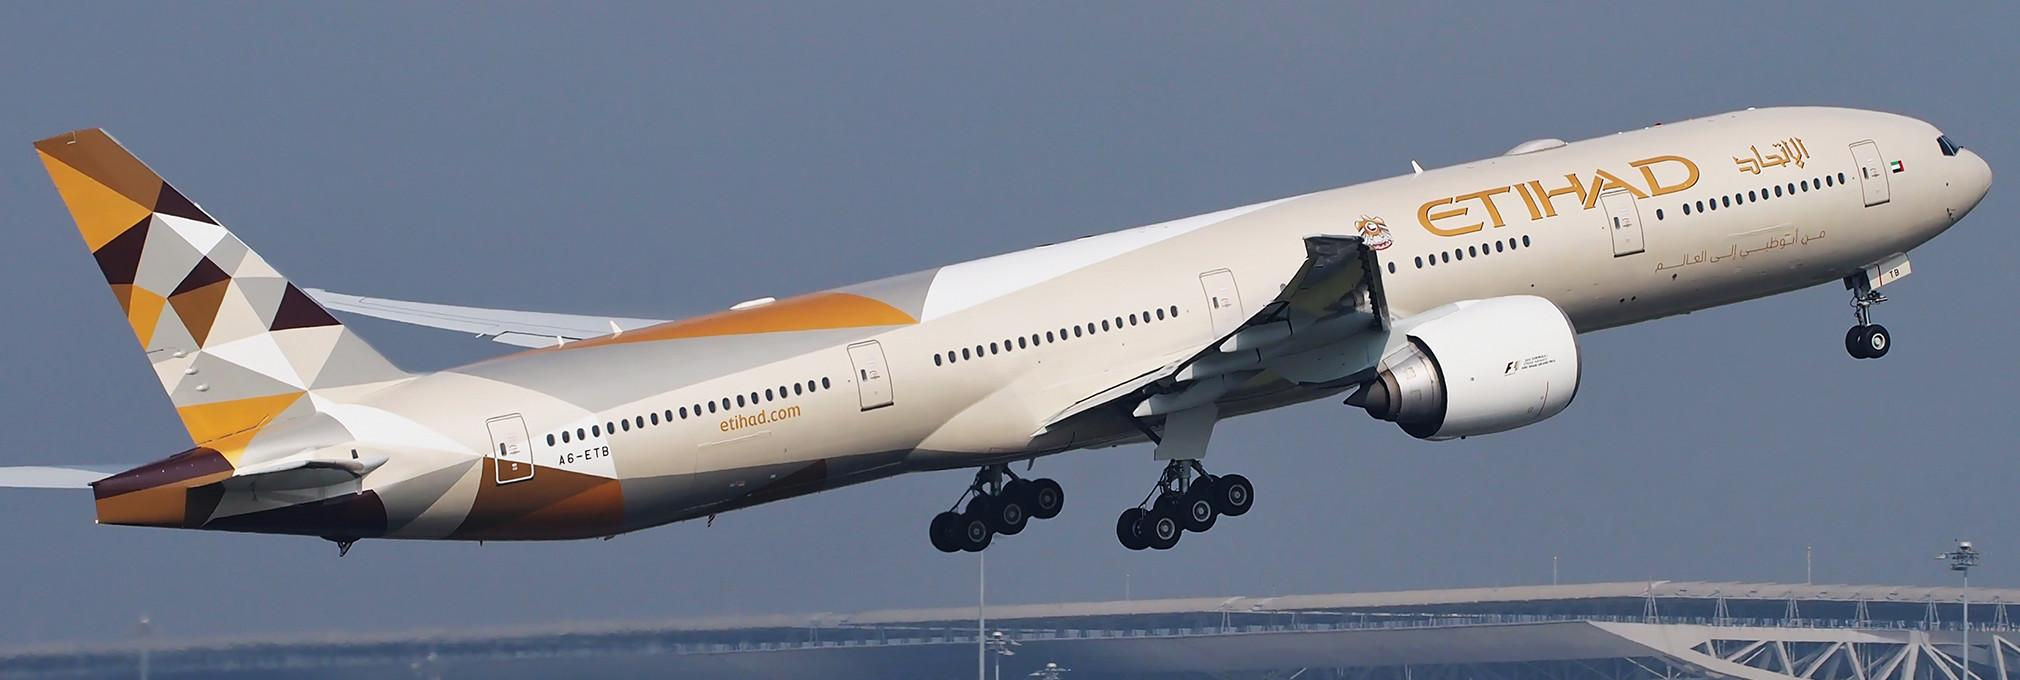 Etihad Airways Discount Coupons And Promo Codes